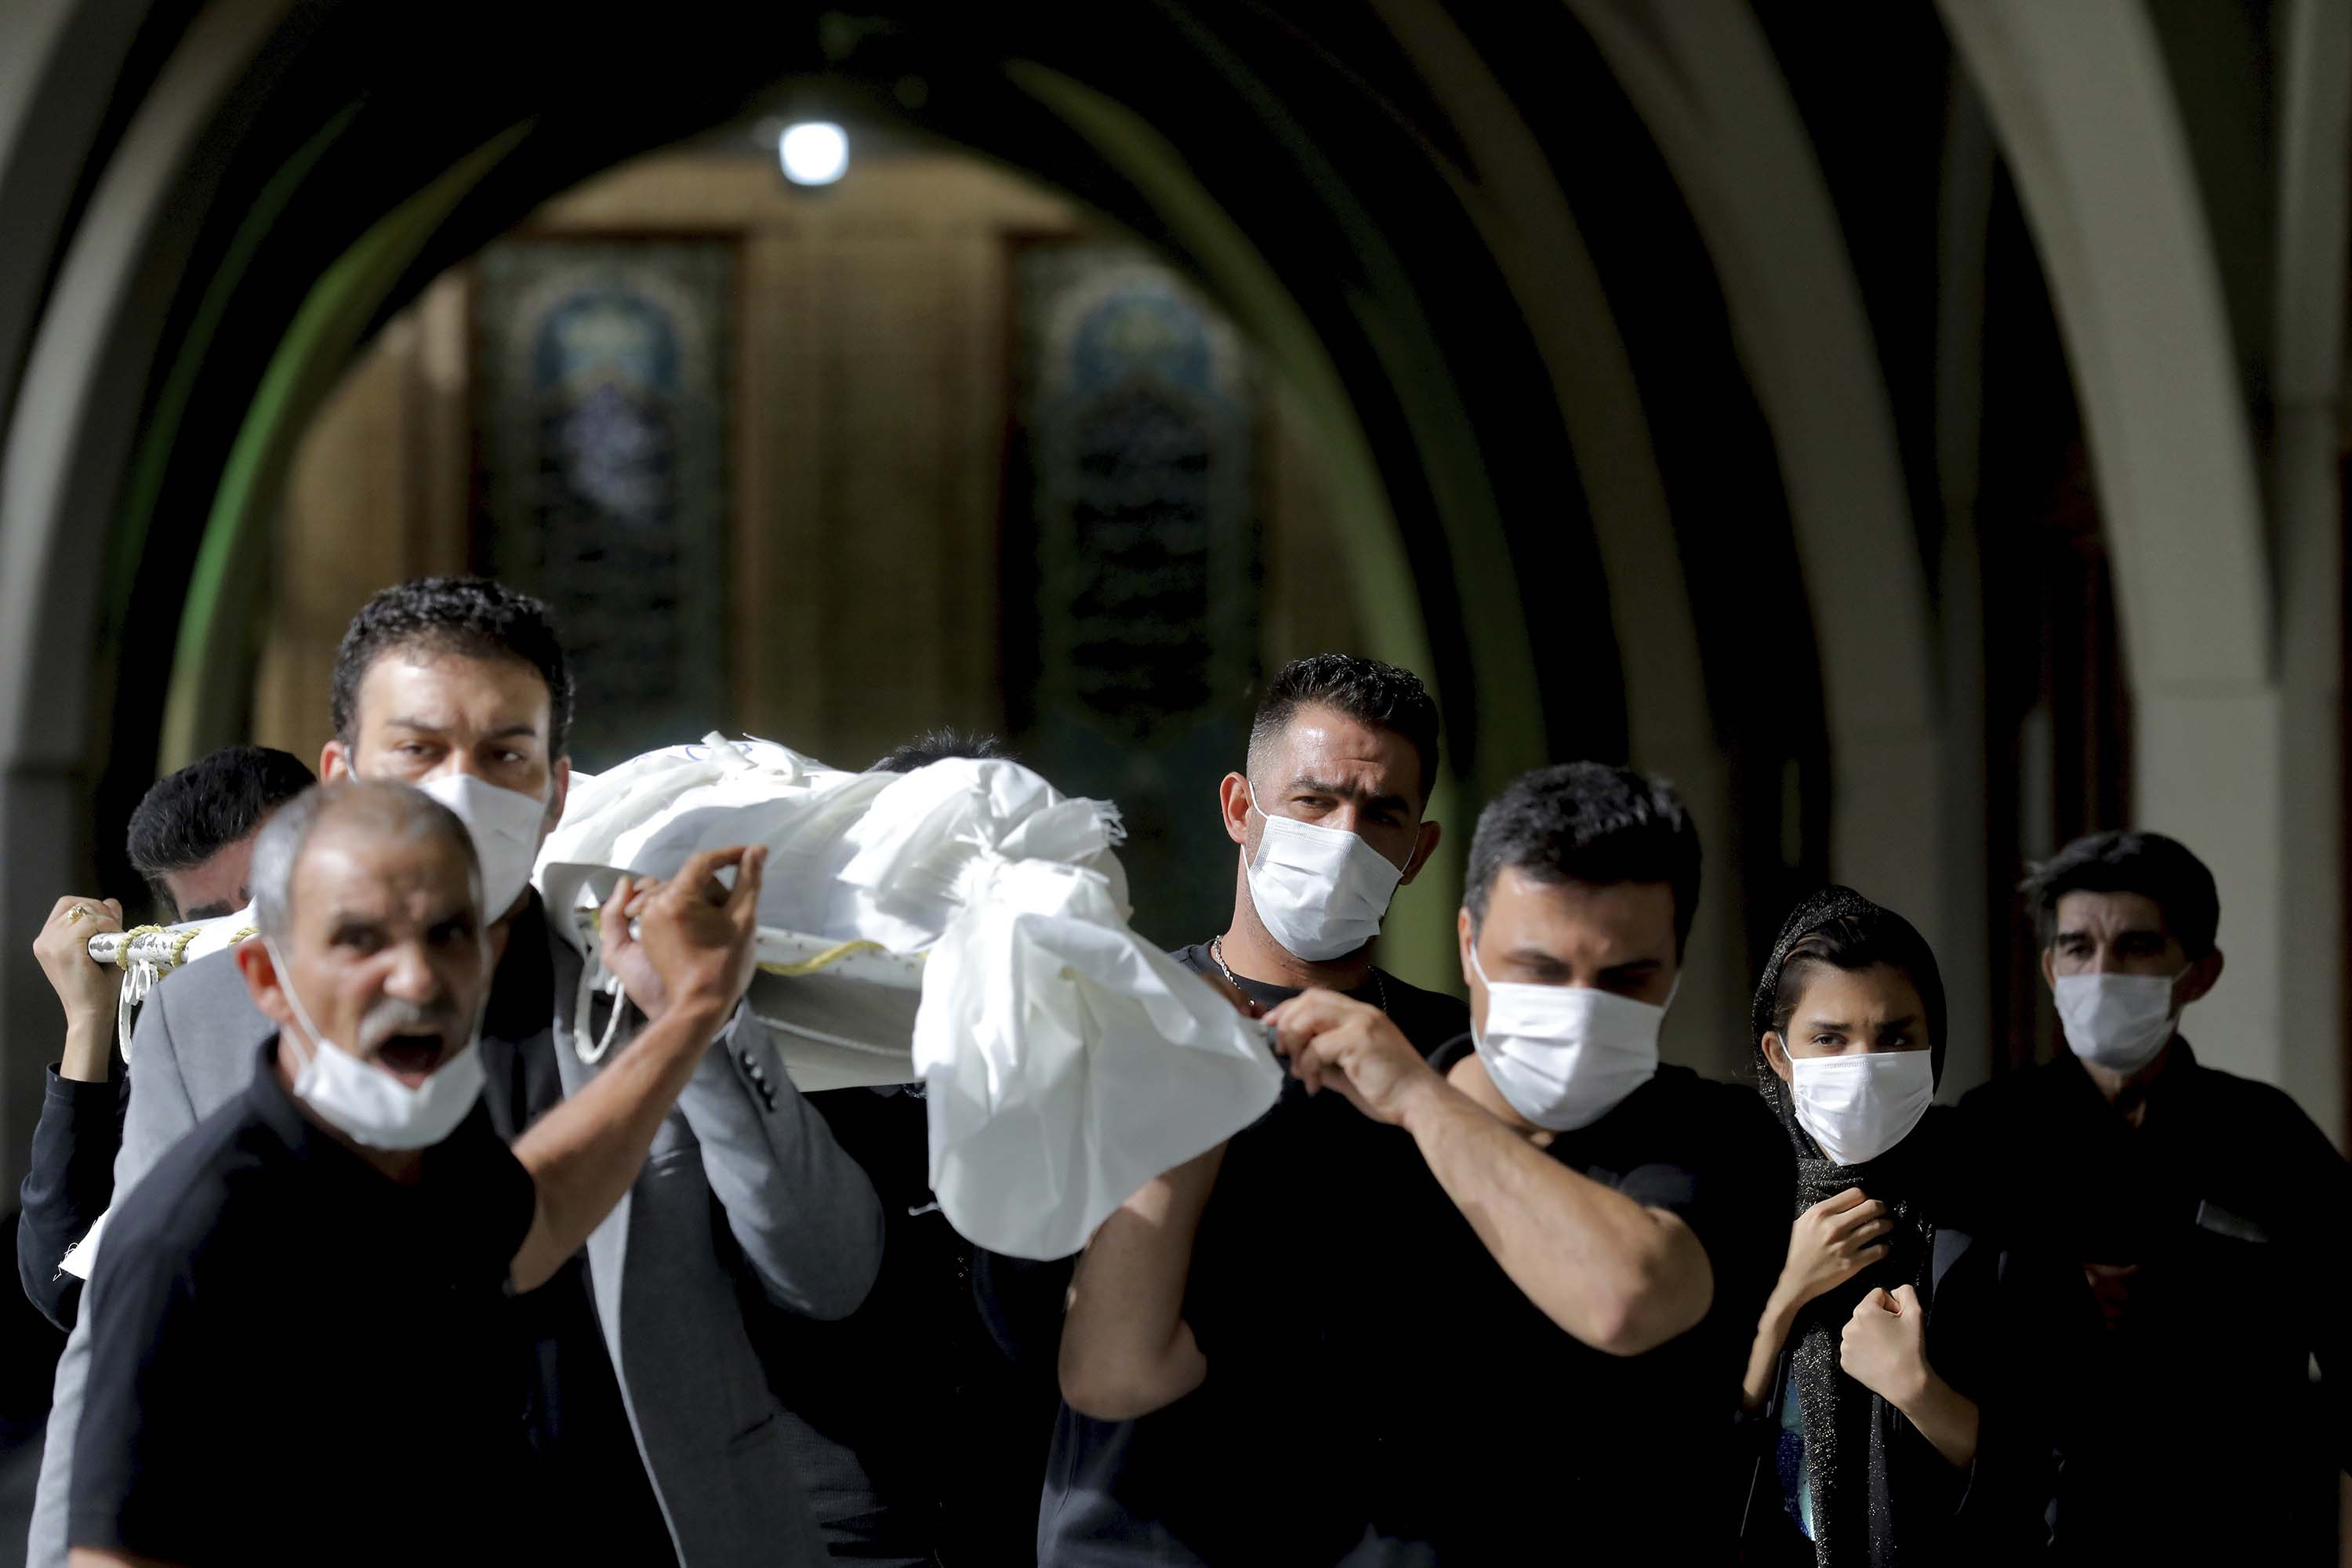 Mourners carry the body of a person who died from Covid-19 at the Behesht-e-Zahra cemetery on the outskirts of Tehran, Iran, on November 1.